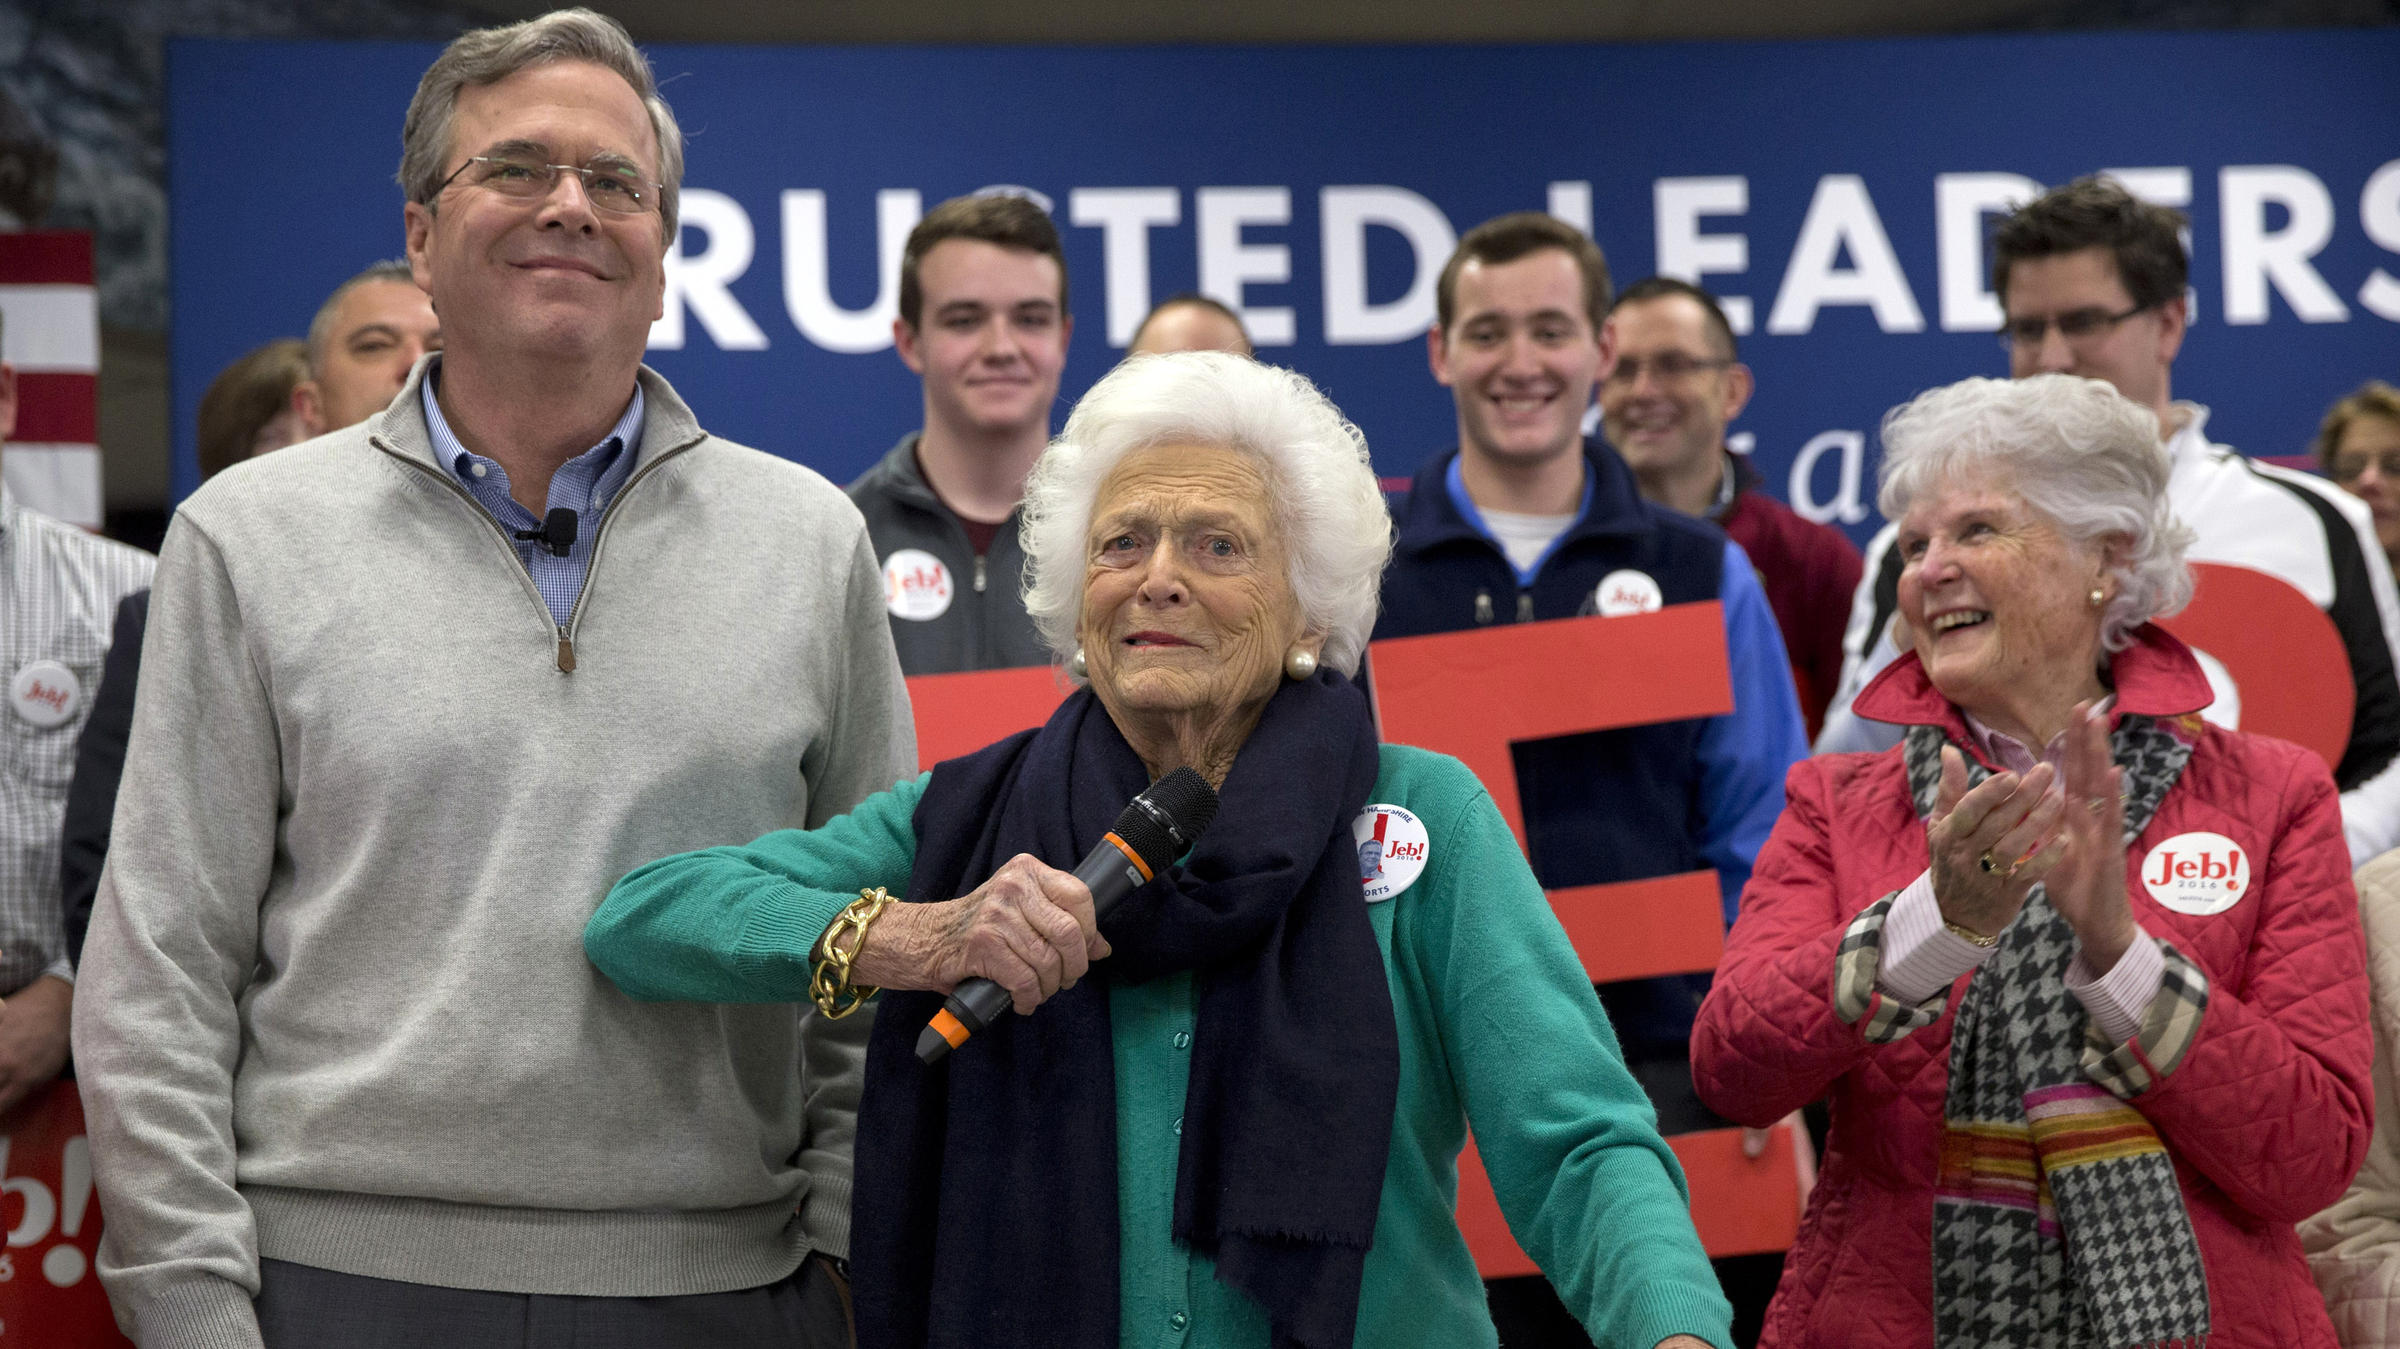 barbara bush hits the trail for son jeb bush new